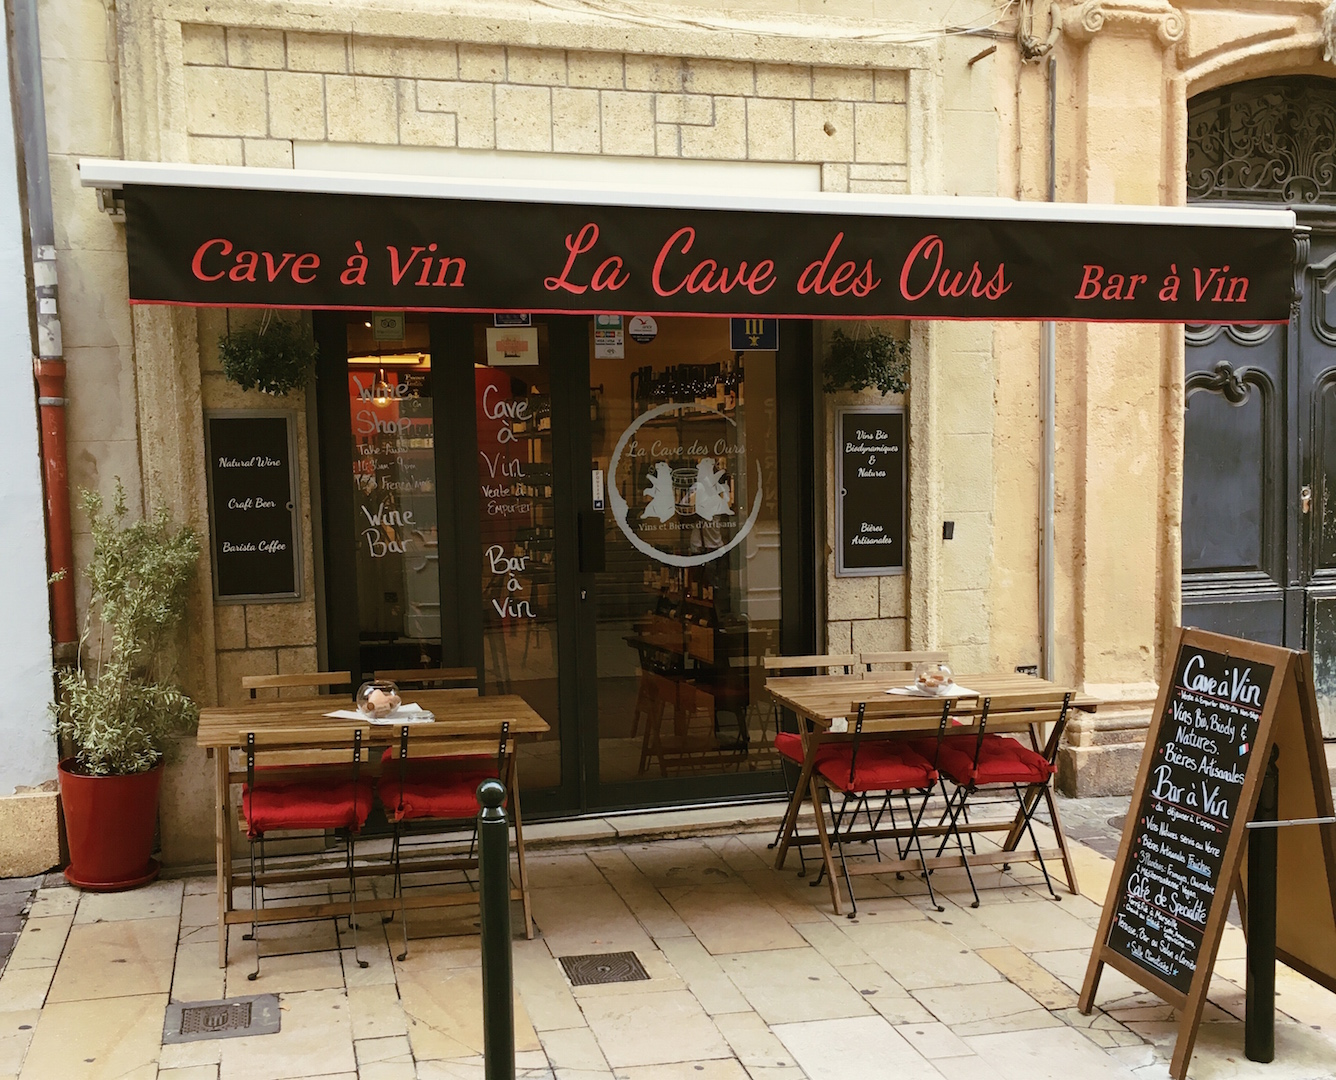 La Cave des Ours -Vins Naturels et Bières Artisanales - Aix-en-Provence- Exterior with side walk terrace, two wooden tables with four chairs each, red cushions, green plant in red pot, sandwich board display sign